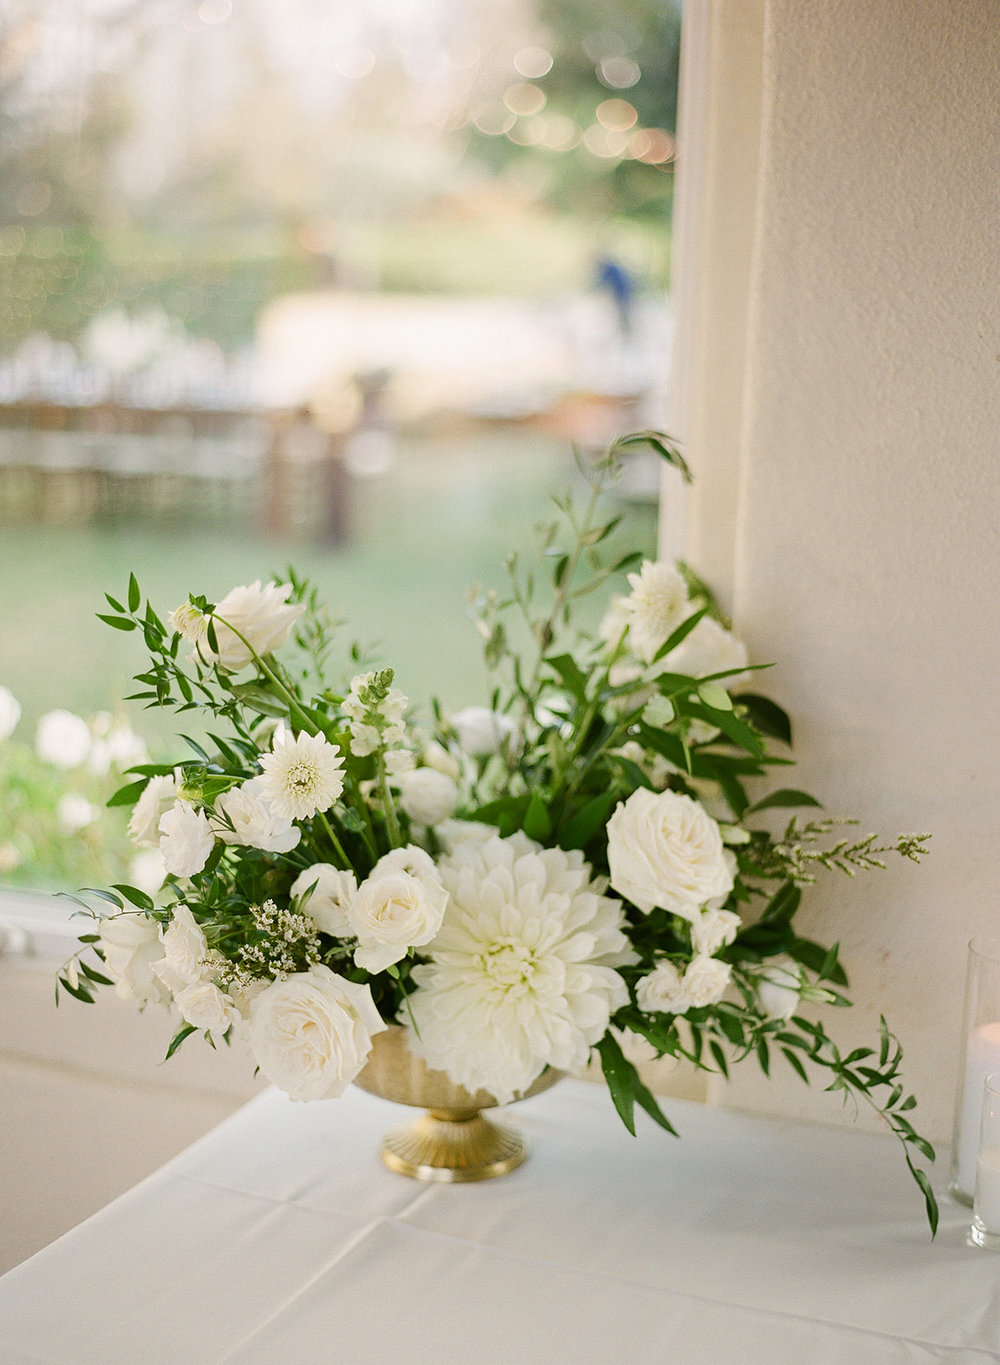 32 white romantic floral arrangement.jpg